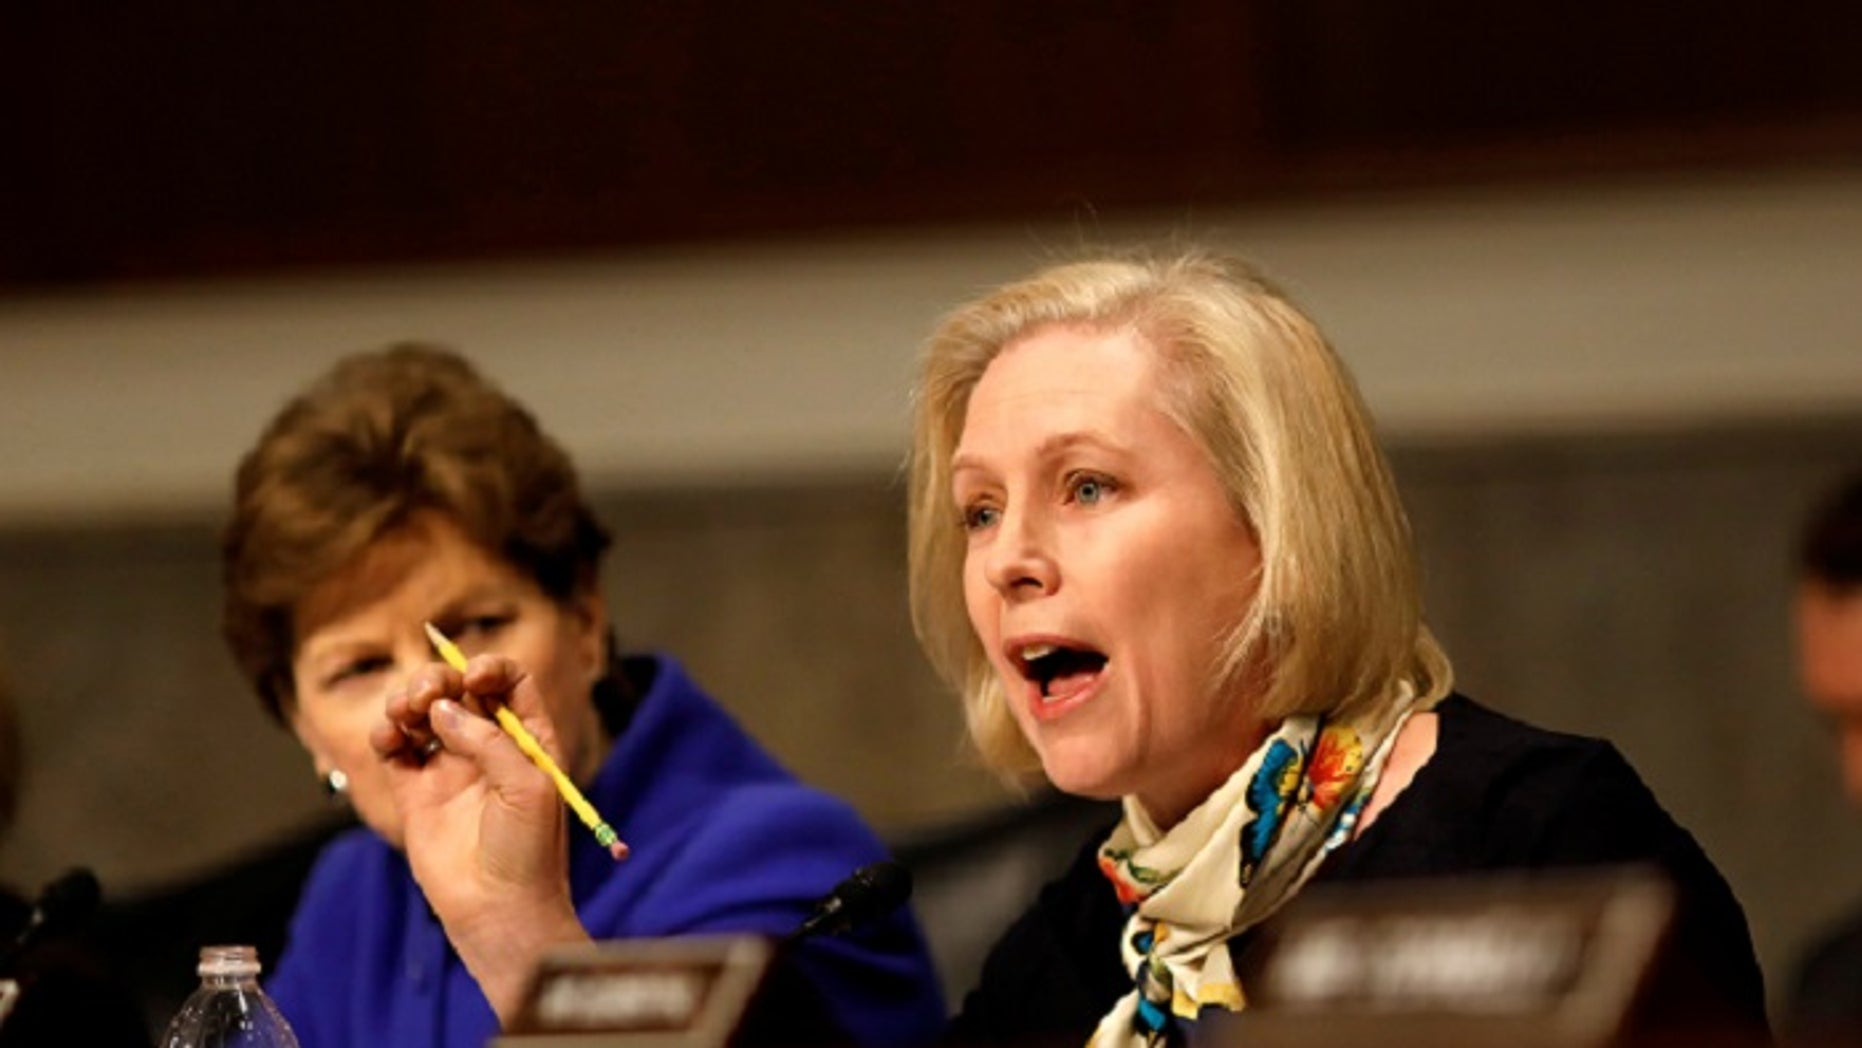 FILE -- Senator Kristen Gillibrand (D-NY) asks a question during a Senate Armed Services Committee hearing on the Marines United Facebook page on Capitol Hill in Washington, D.C., U.S. March 14, 2017.